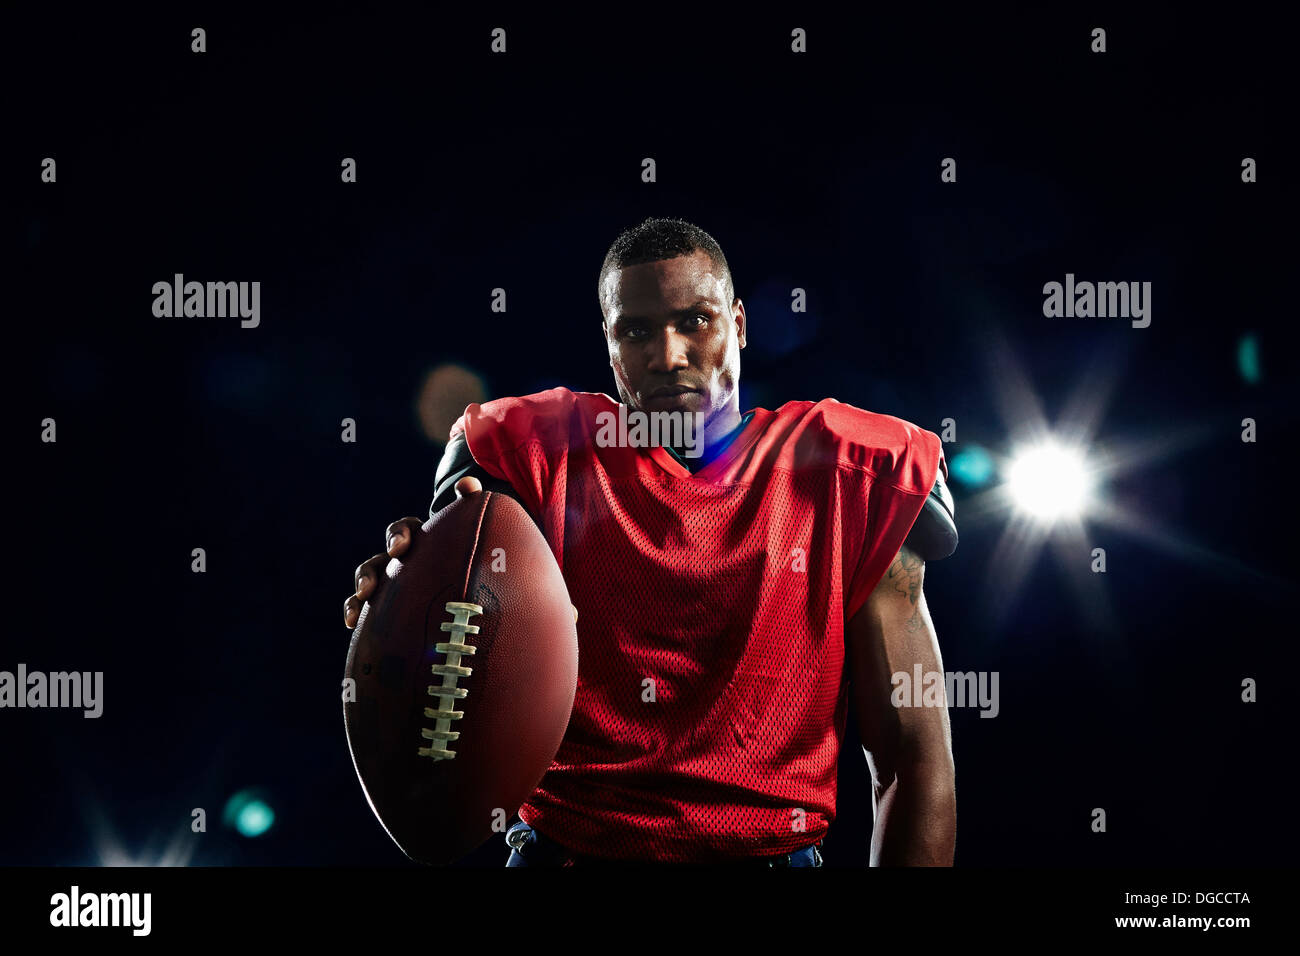 Portrait of american football player holding ball - Stock Image